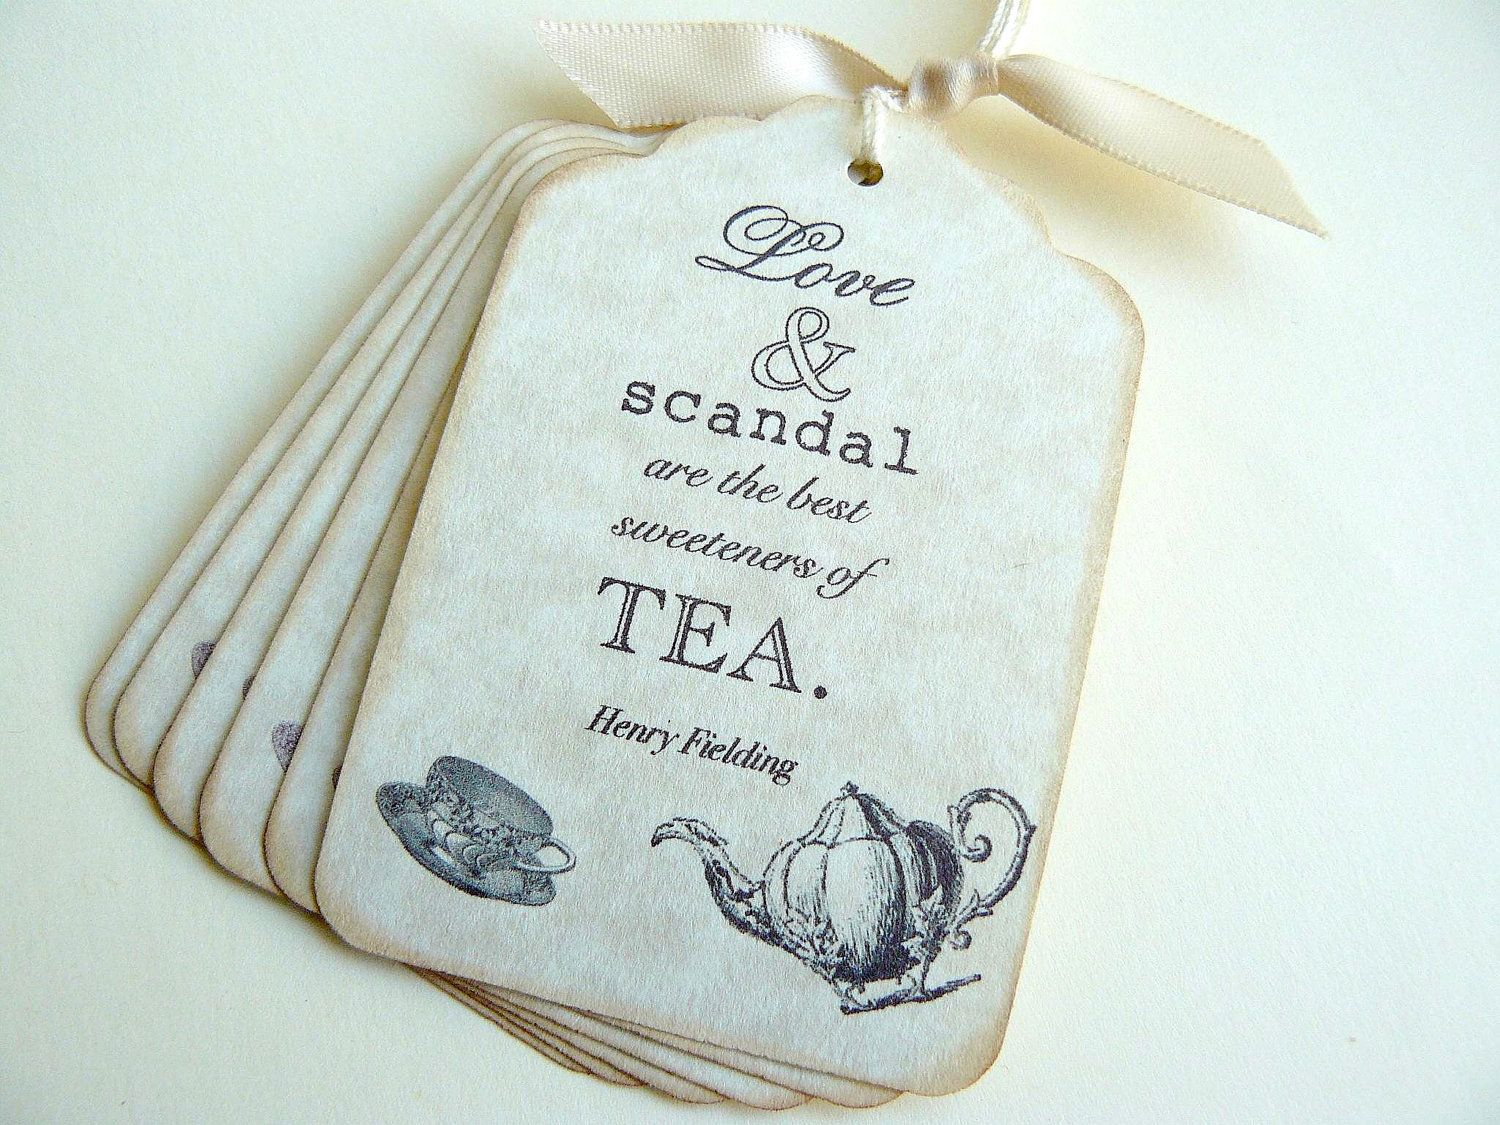 Bridal Shower Favor Tags Sayings : VIntage Tea Party Tags, Bridal Shower Favor Tags, Gift Tags, Place ...